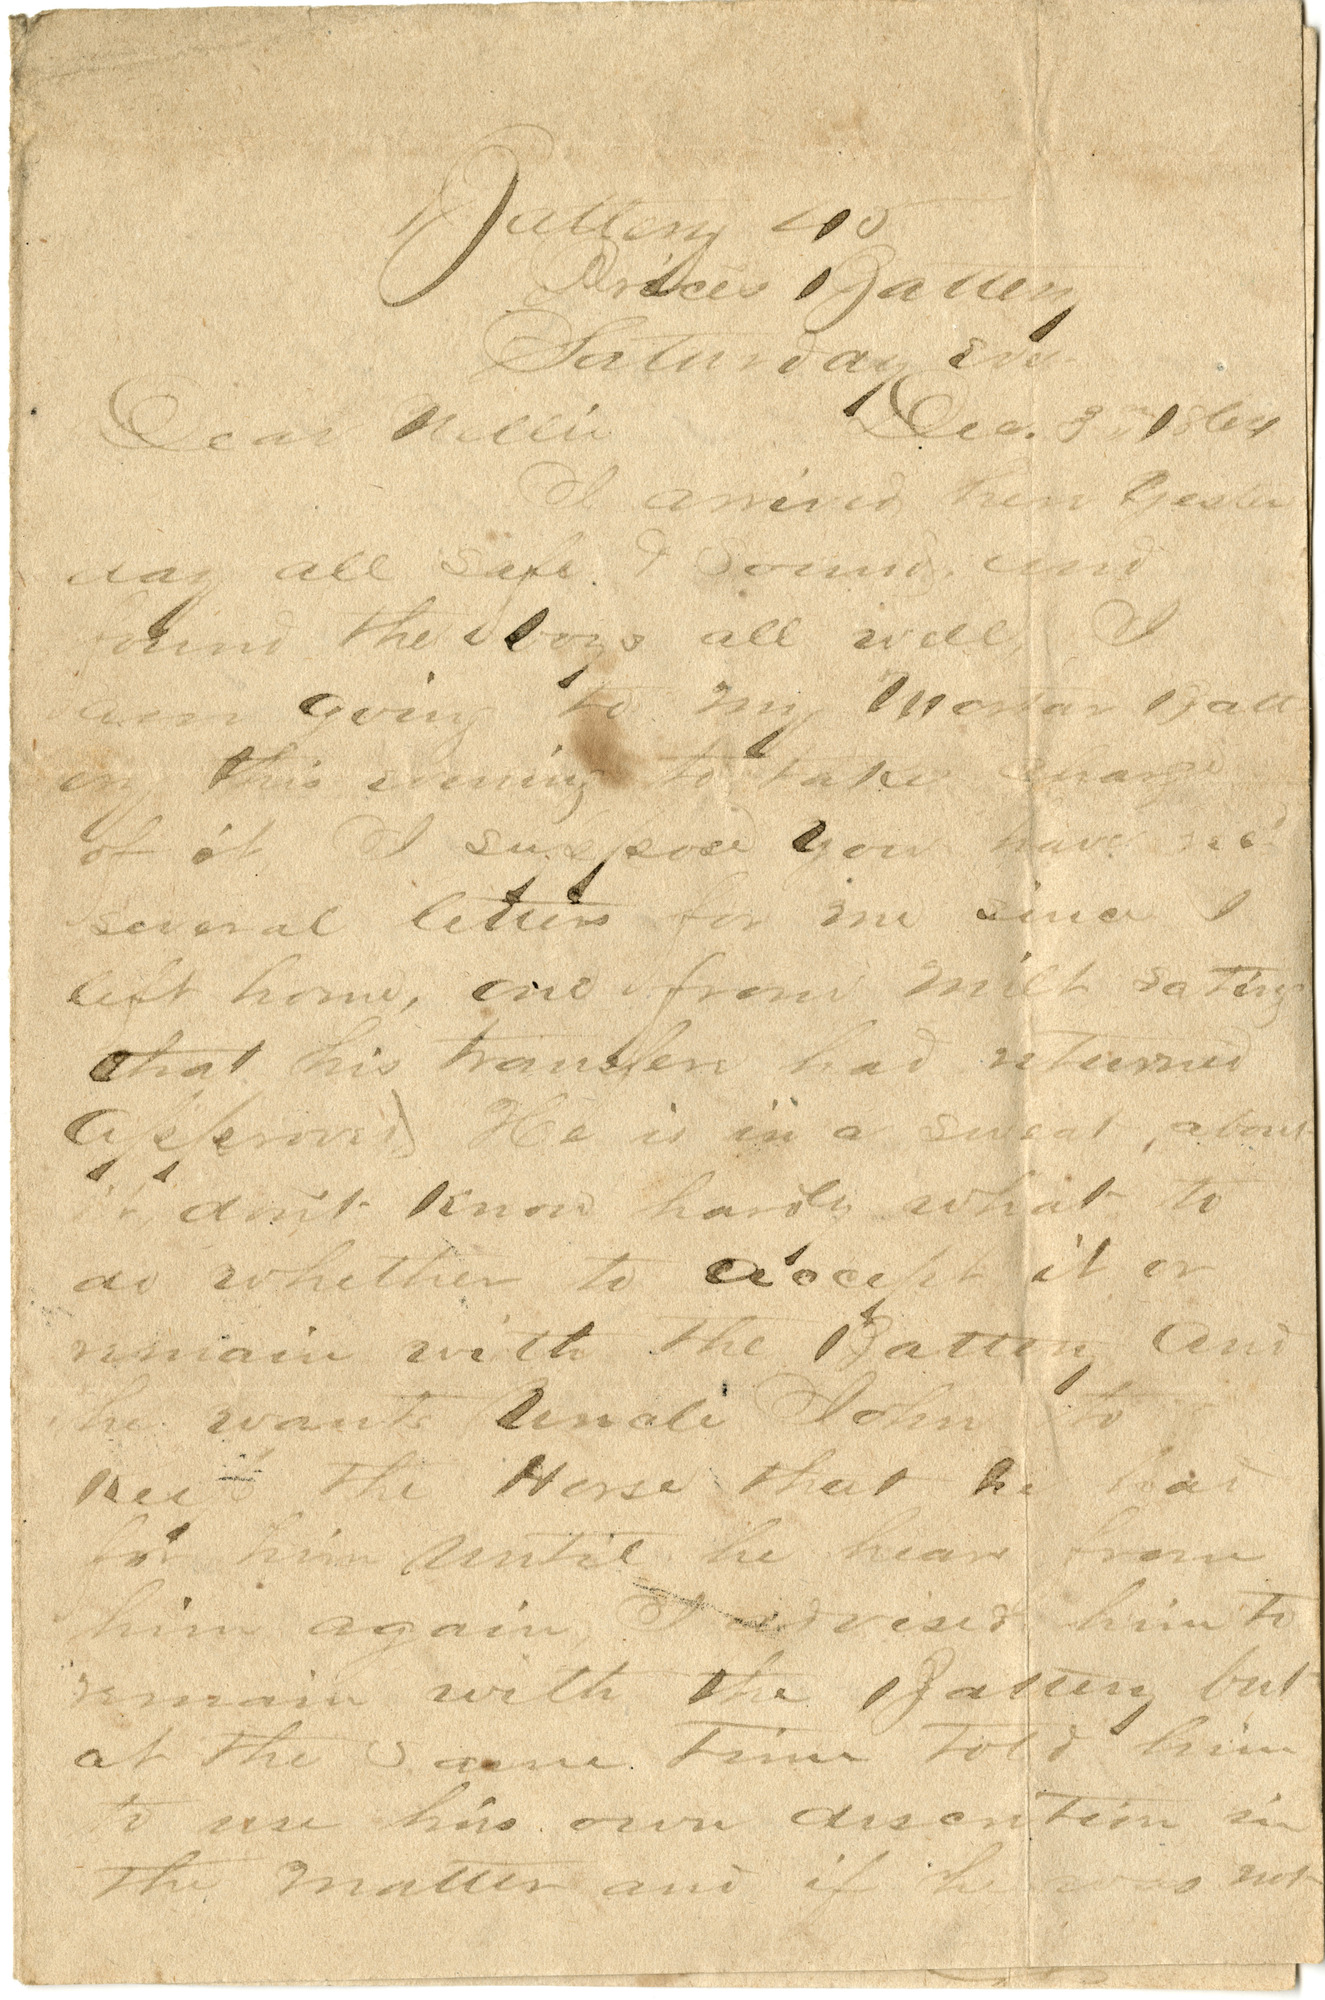 http://spec.lib.vt.edu/pickup/Omeka_upload/Ms1984-172_KoontzFamily_F1_Letter_1864_1203a.jpg